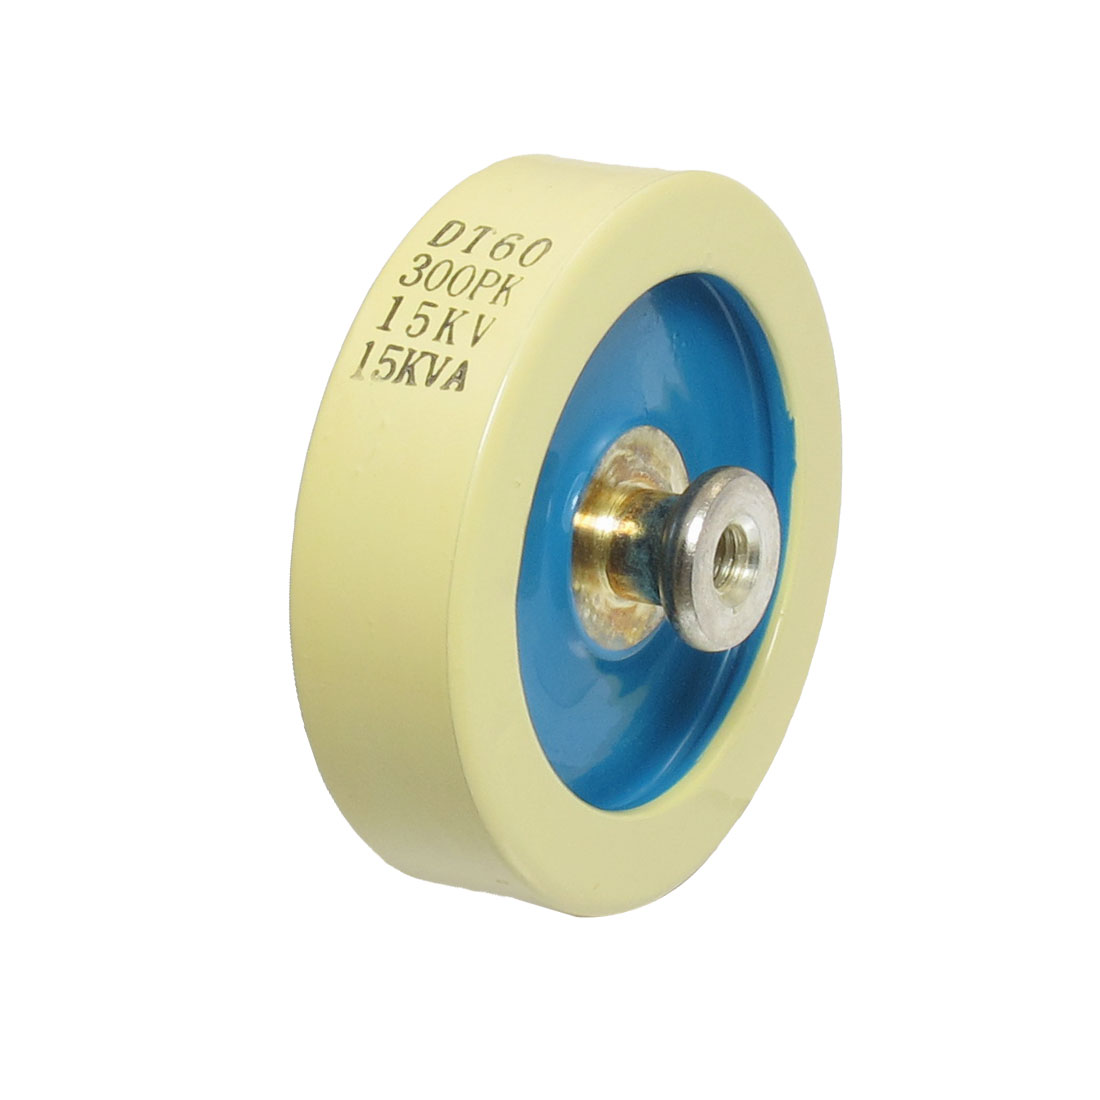 Beige Blue 300PF 15KV 15KVA Door Knob High Voltage HV Ceramic Capacitor